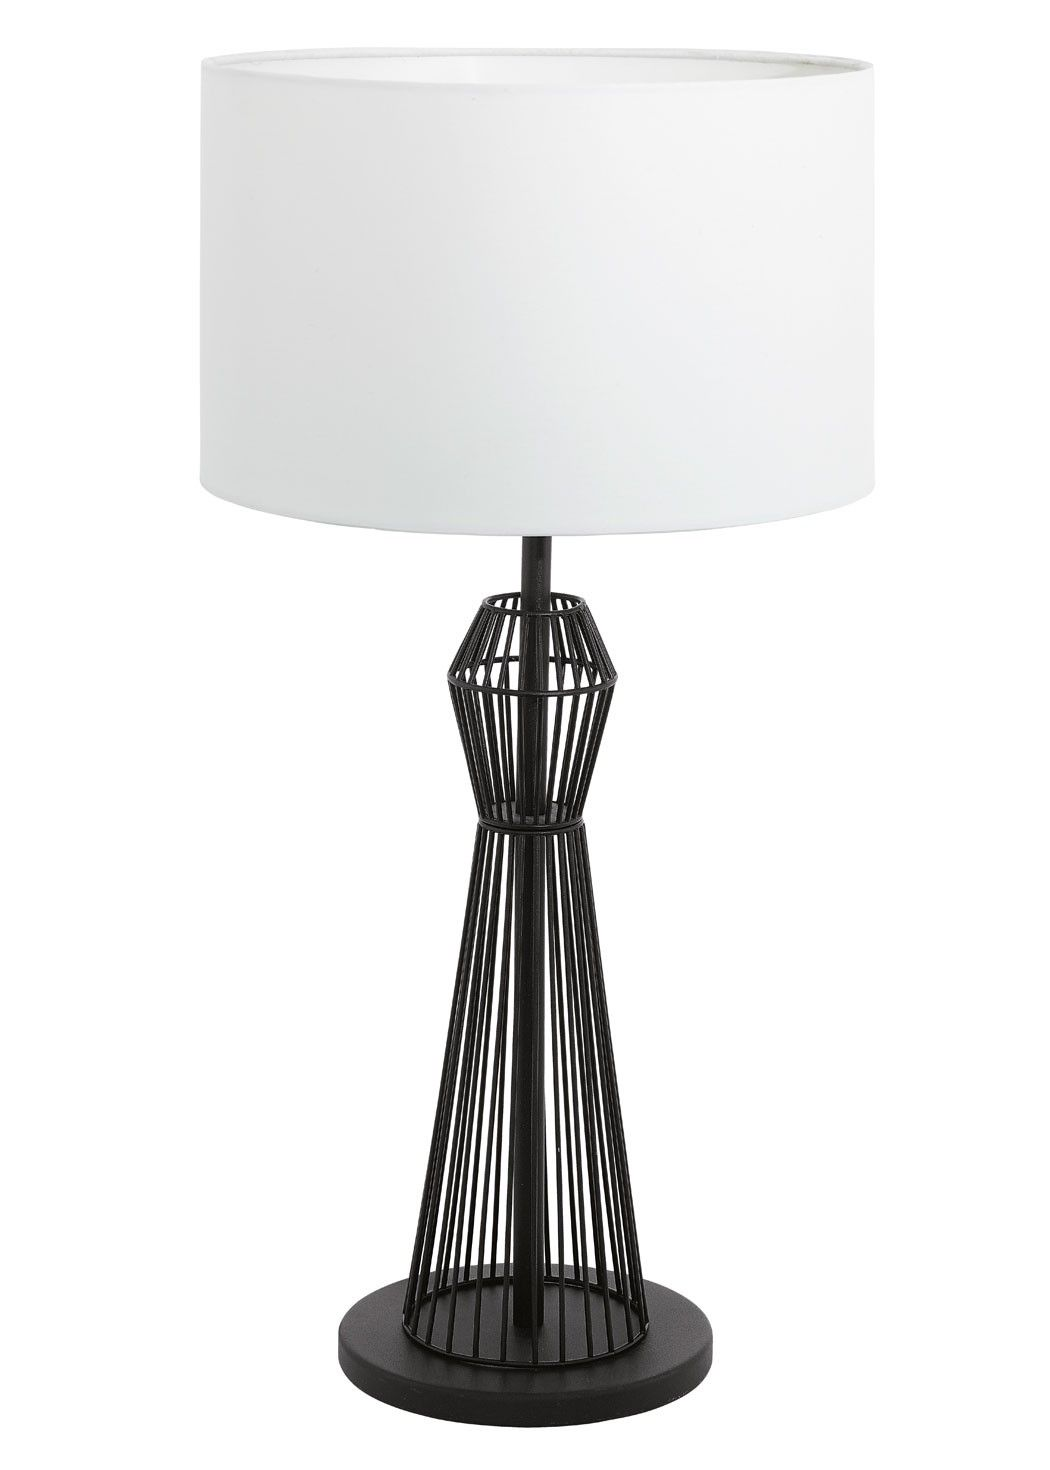 Matching floor and table lamps - Eglo Valseno Table Lamp Black 99 Matching Floor Lamp Available